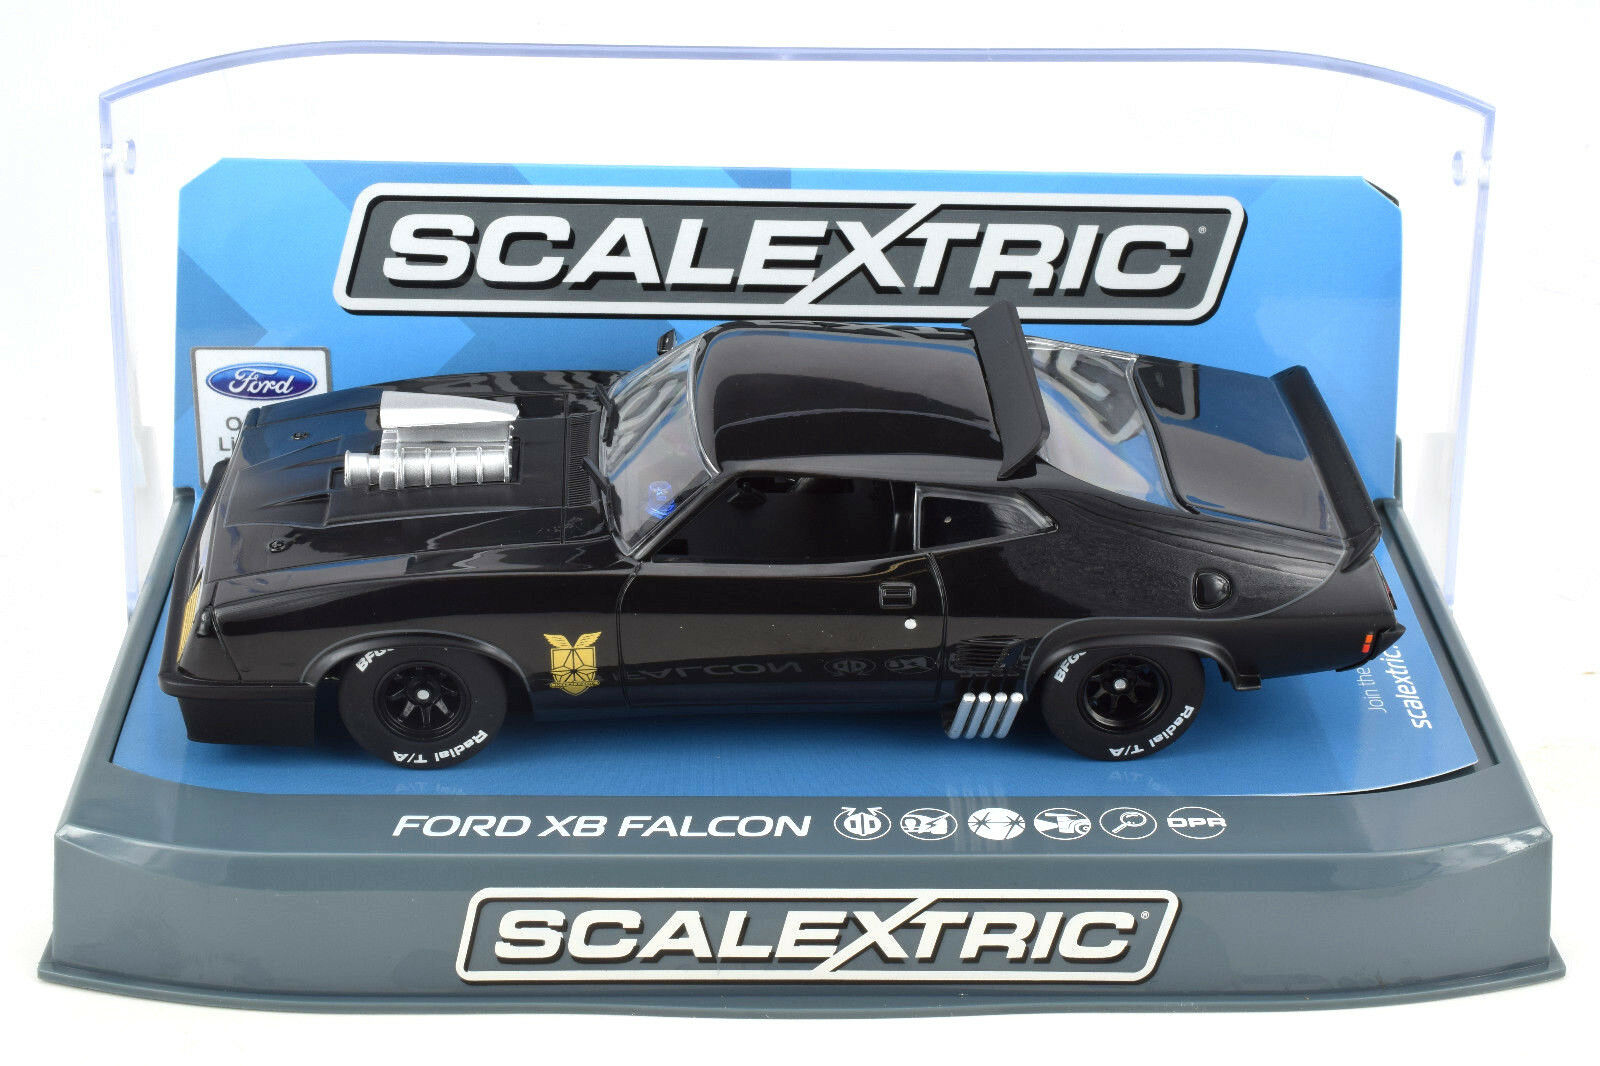 Scalextric Mad Max Ford XB Falcon DPR W  Lights 1 32 Slot Car C3697